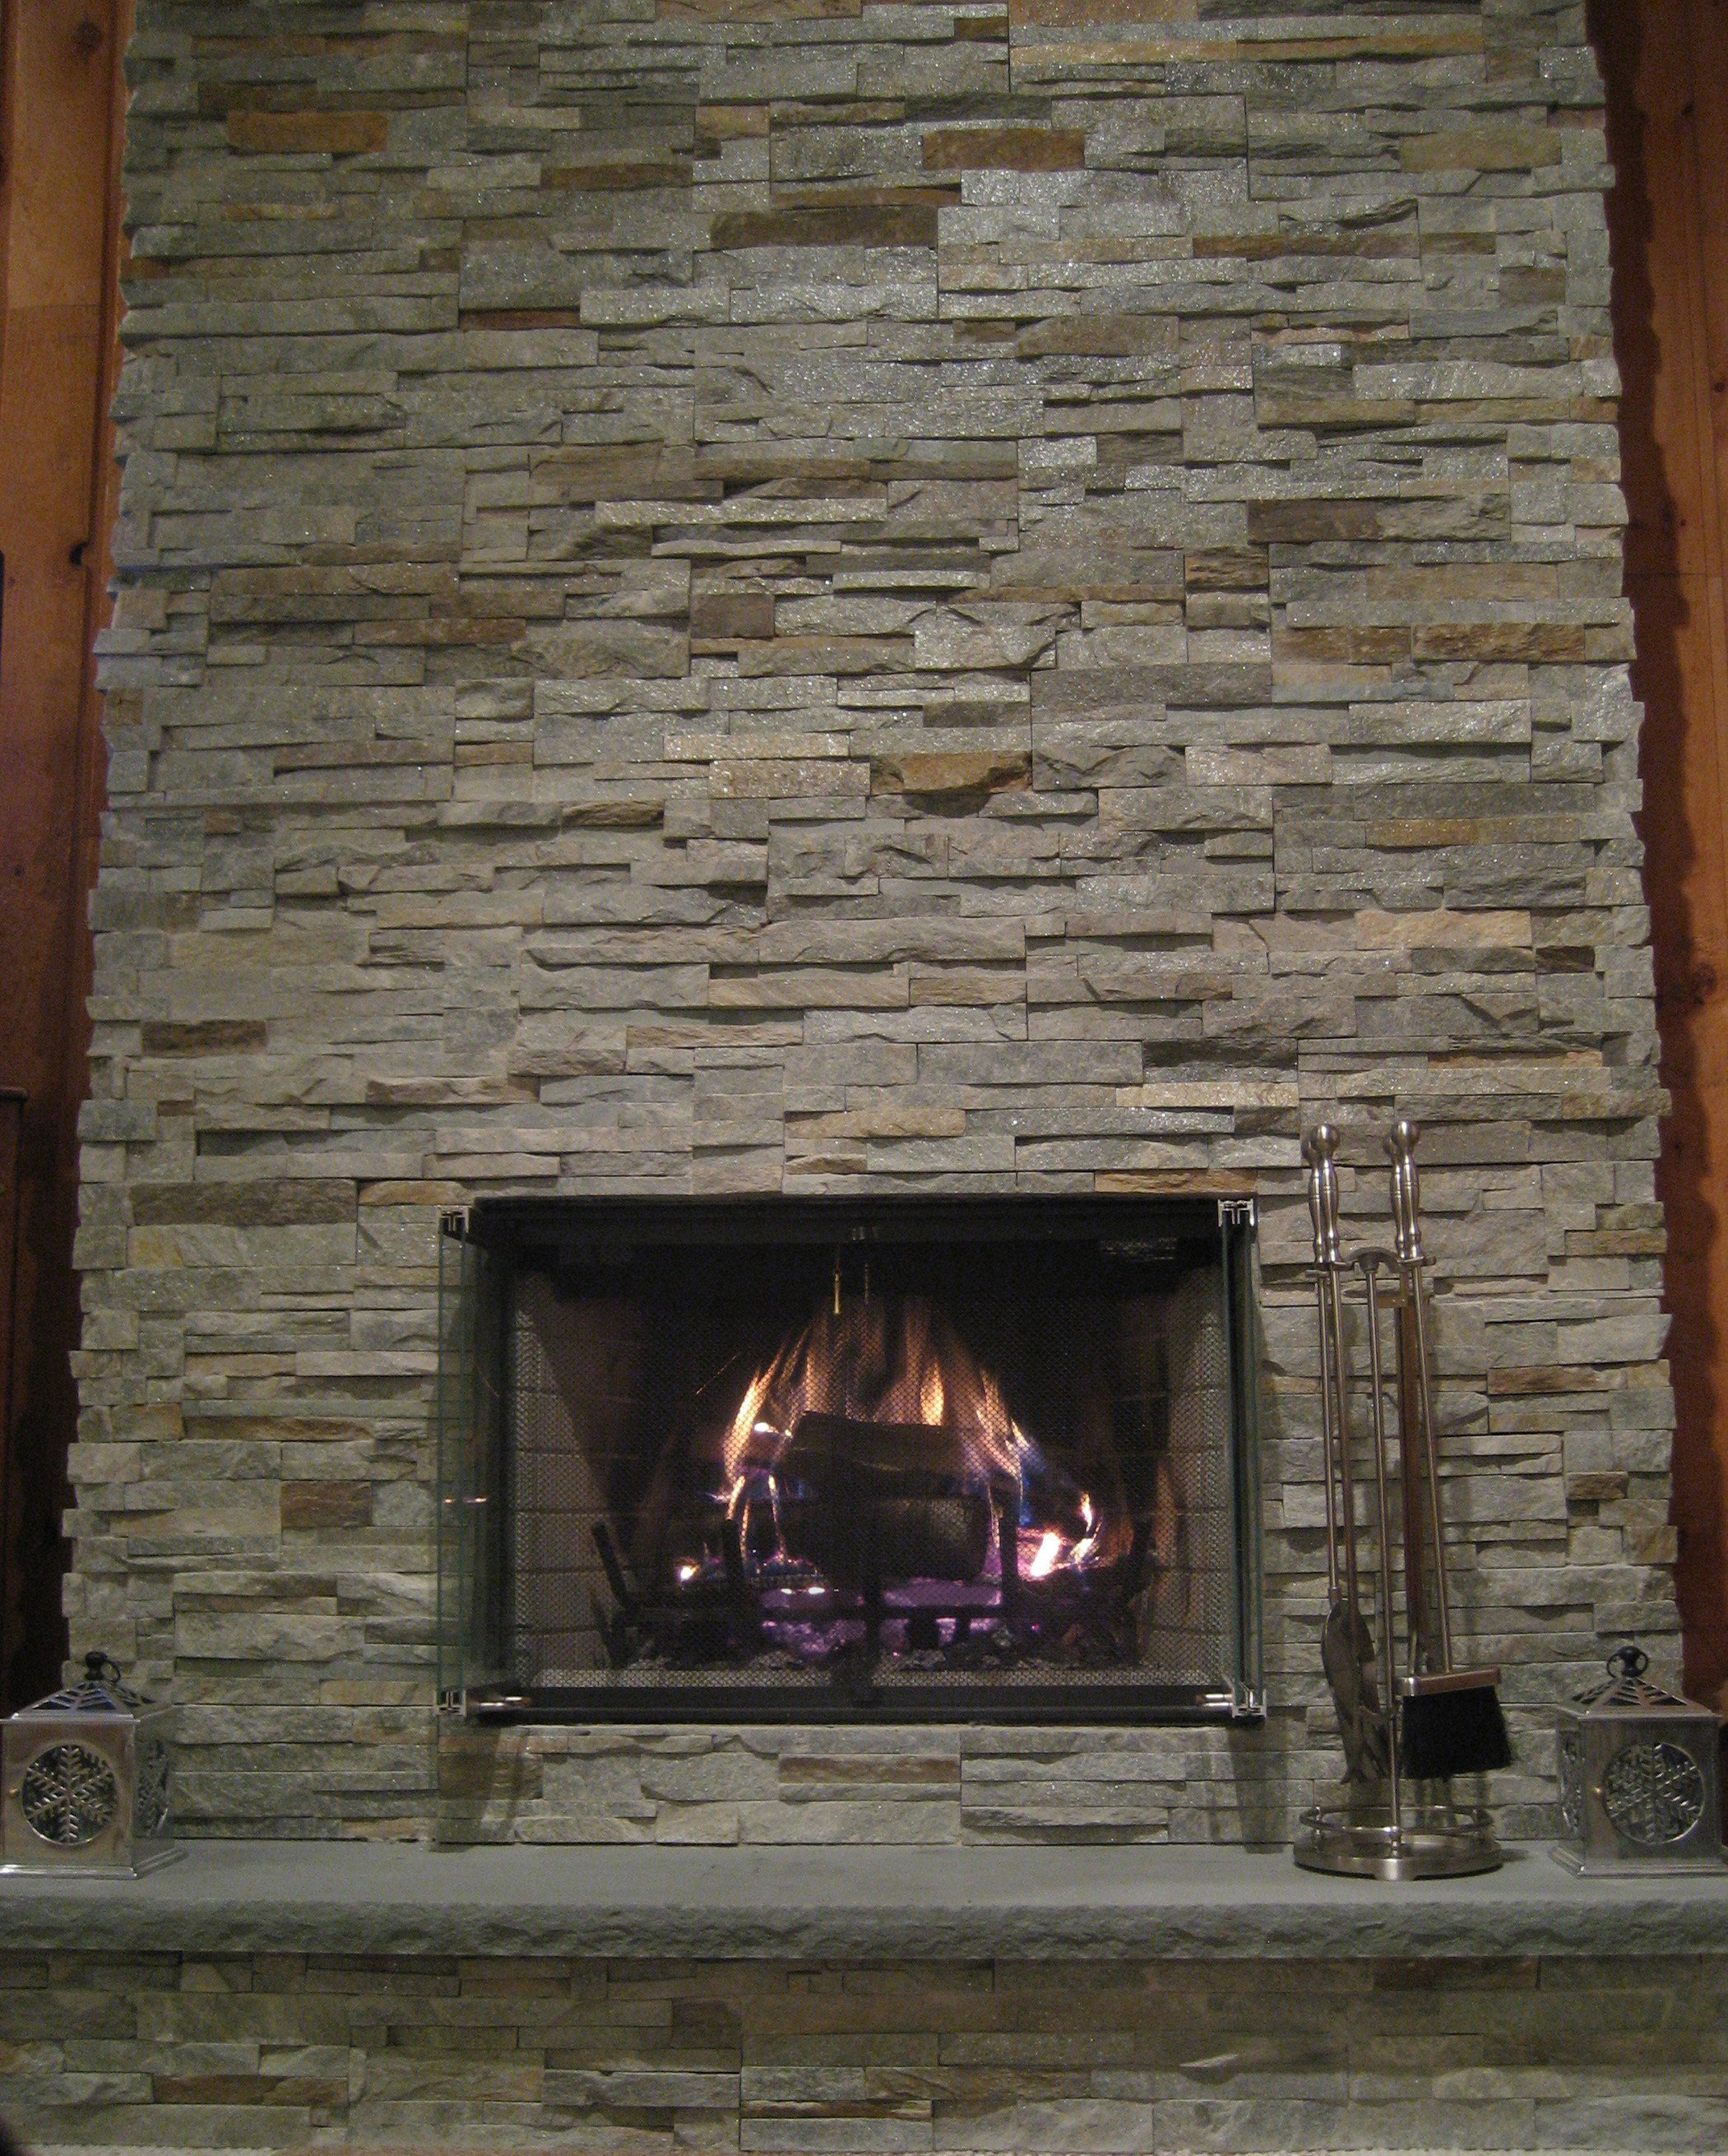 Ledge stone veneer fireplace